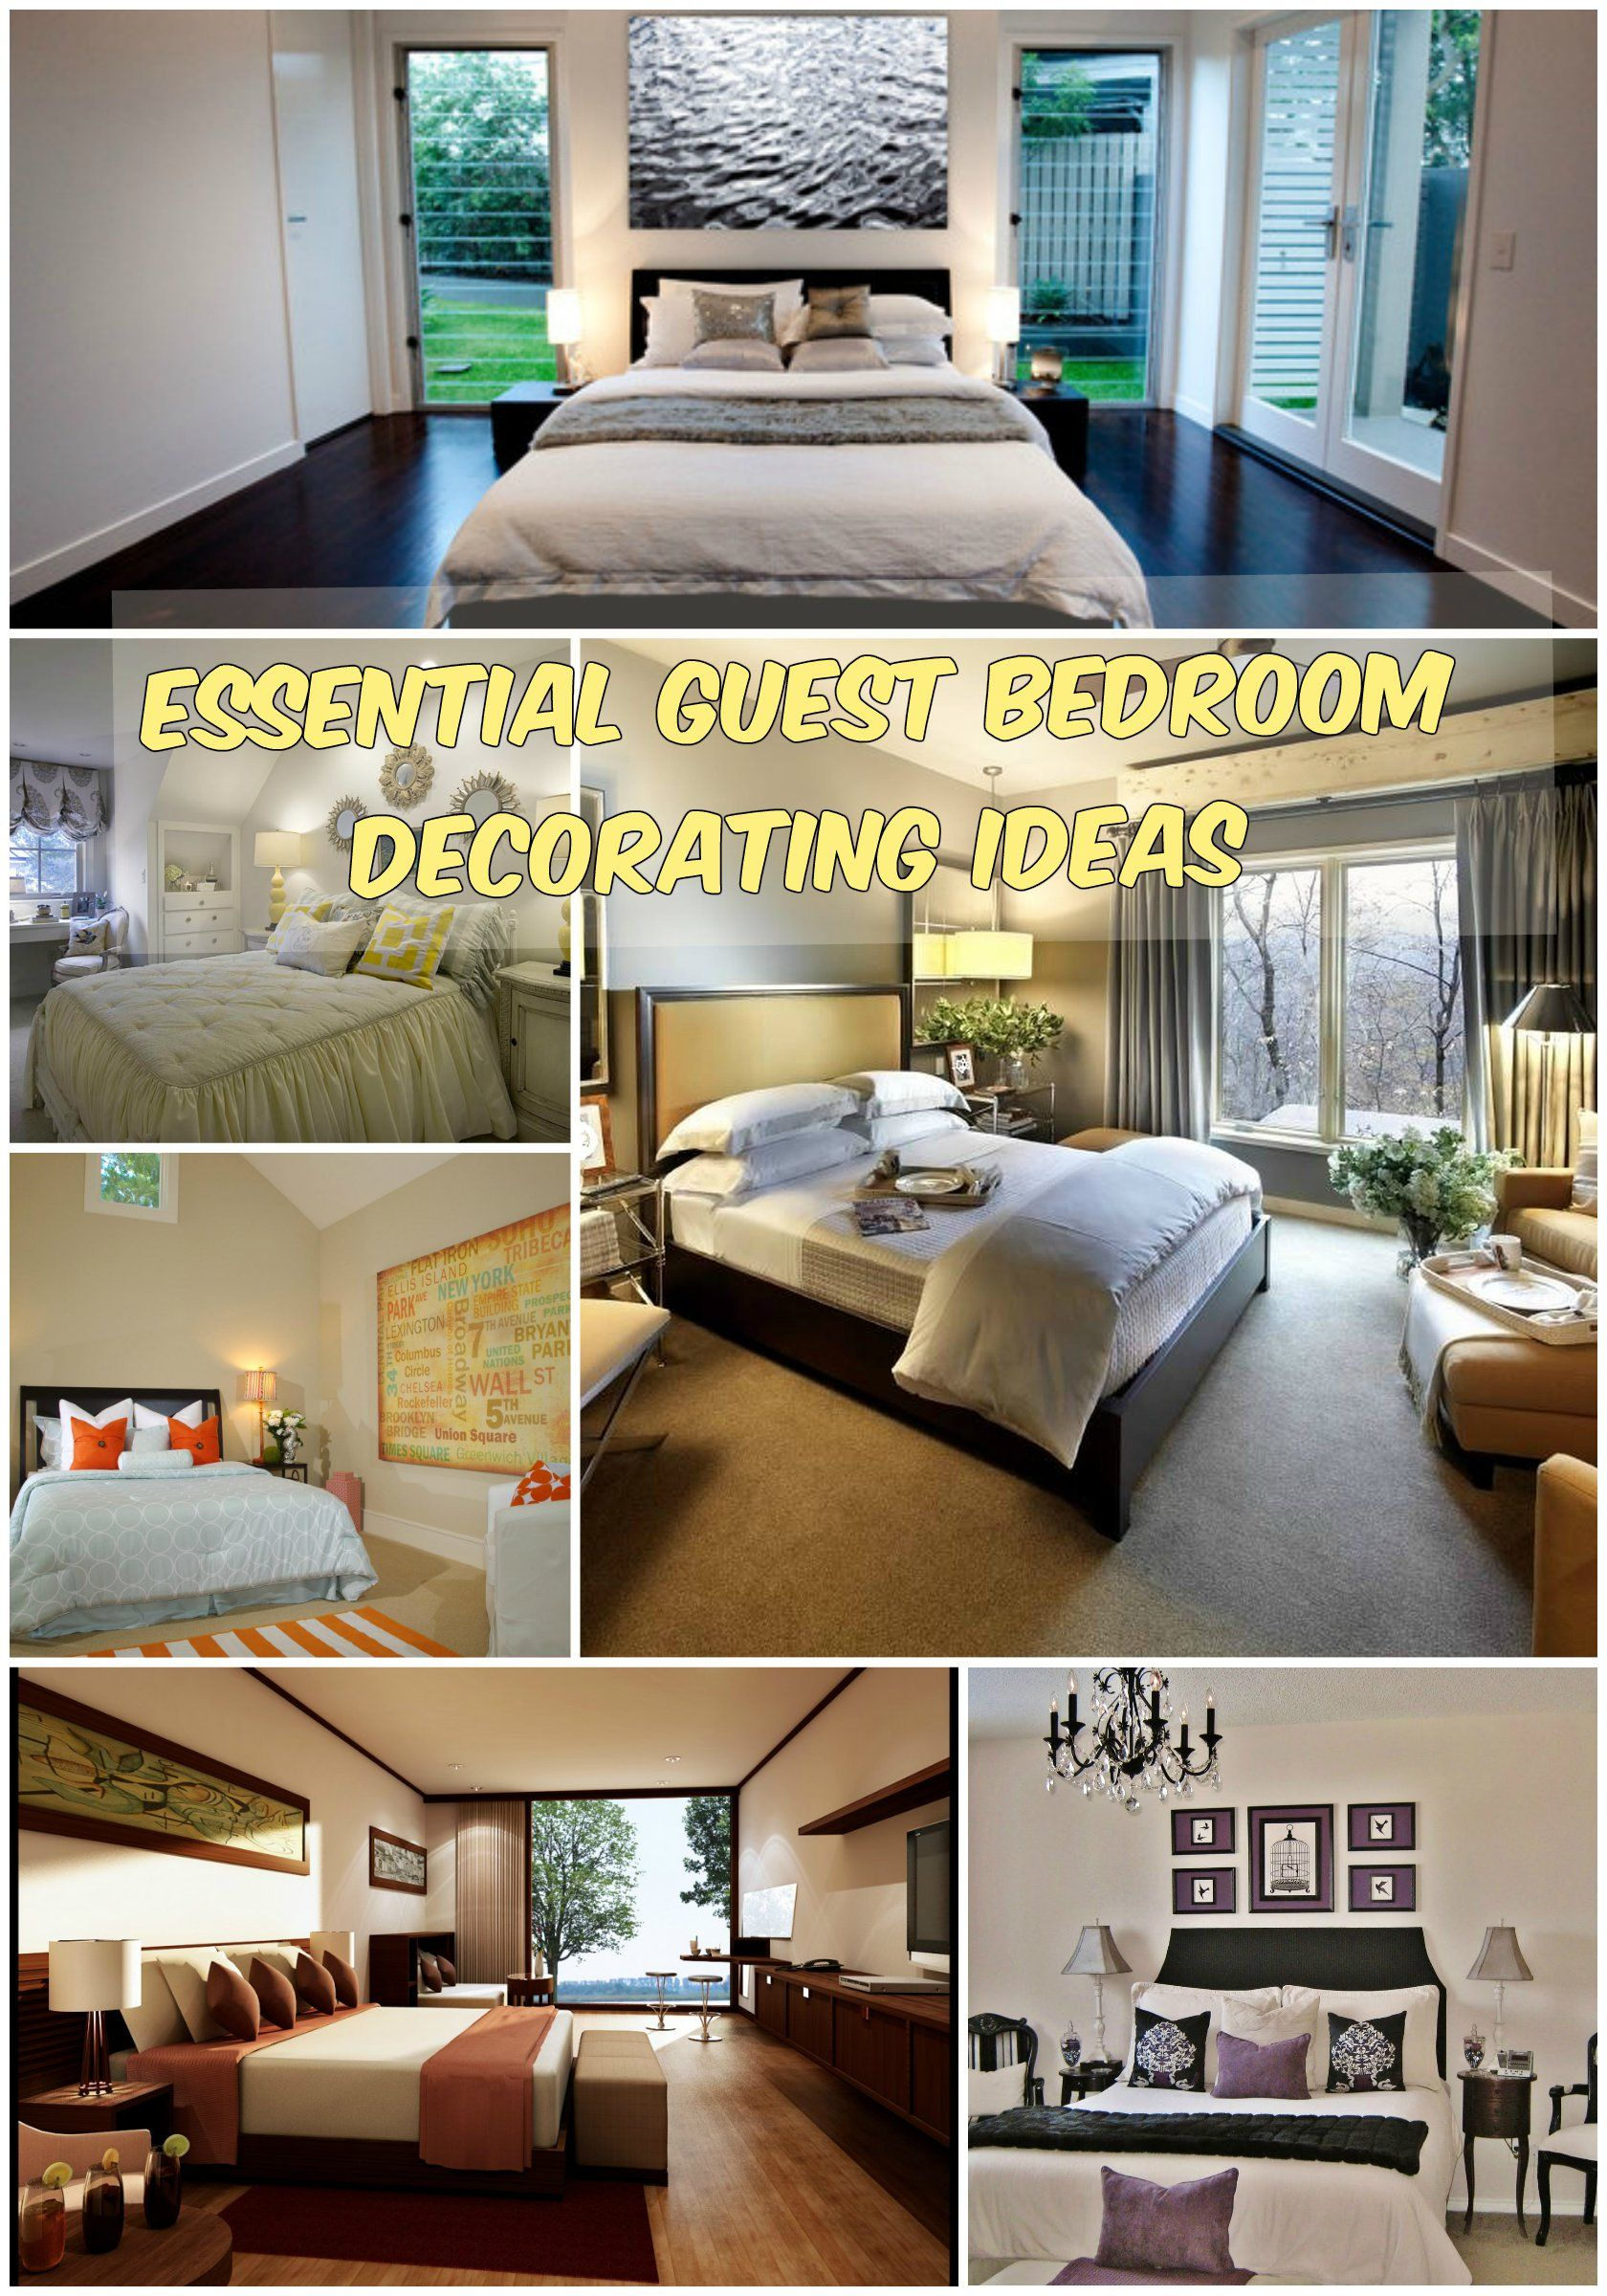 Guest Bedroom Decor Ideas Prepossessing Why Guest Bedroom Decorating Ideas Are Important  Diy Home Decor Review